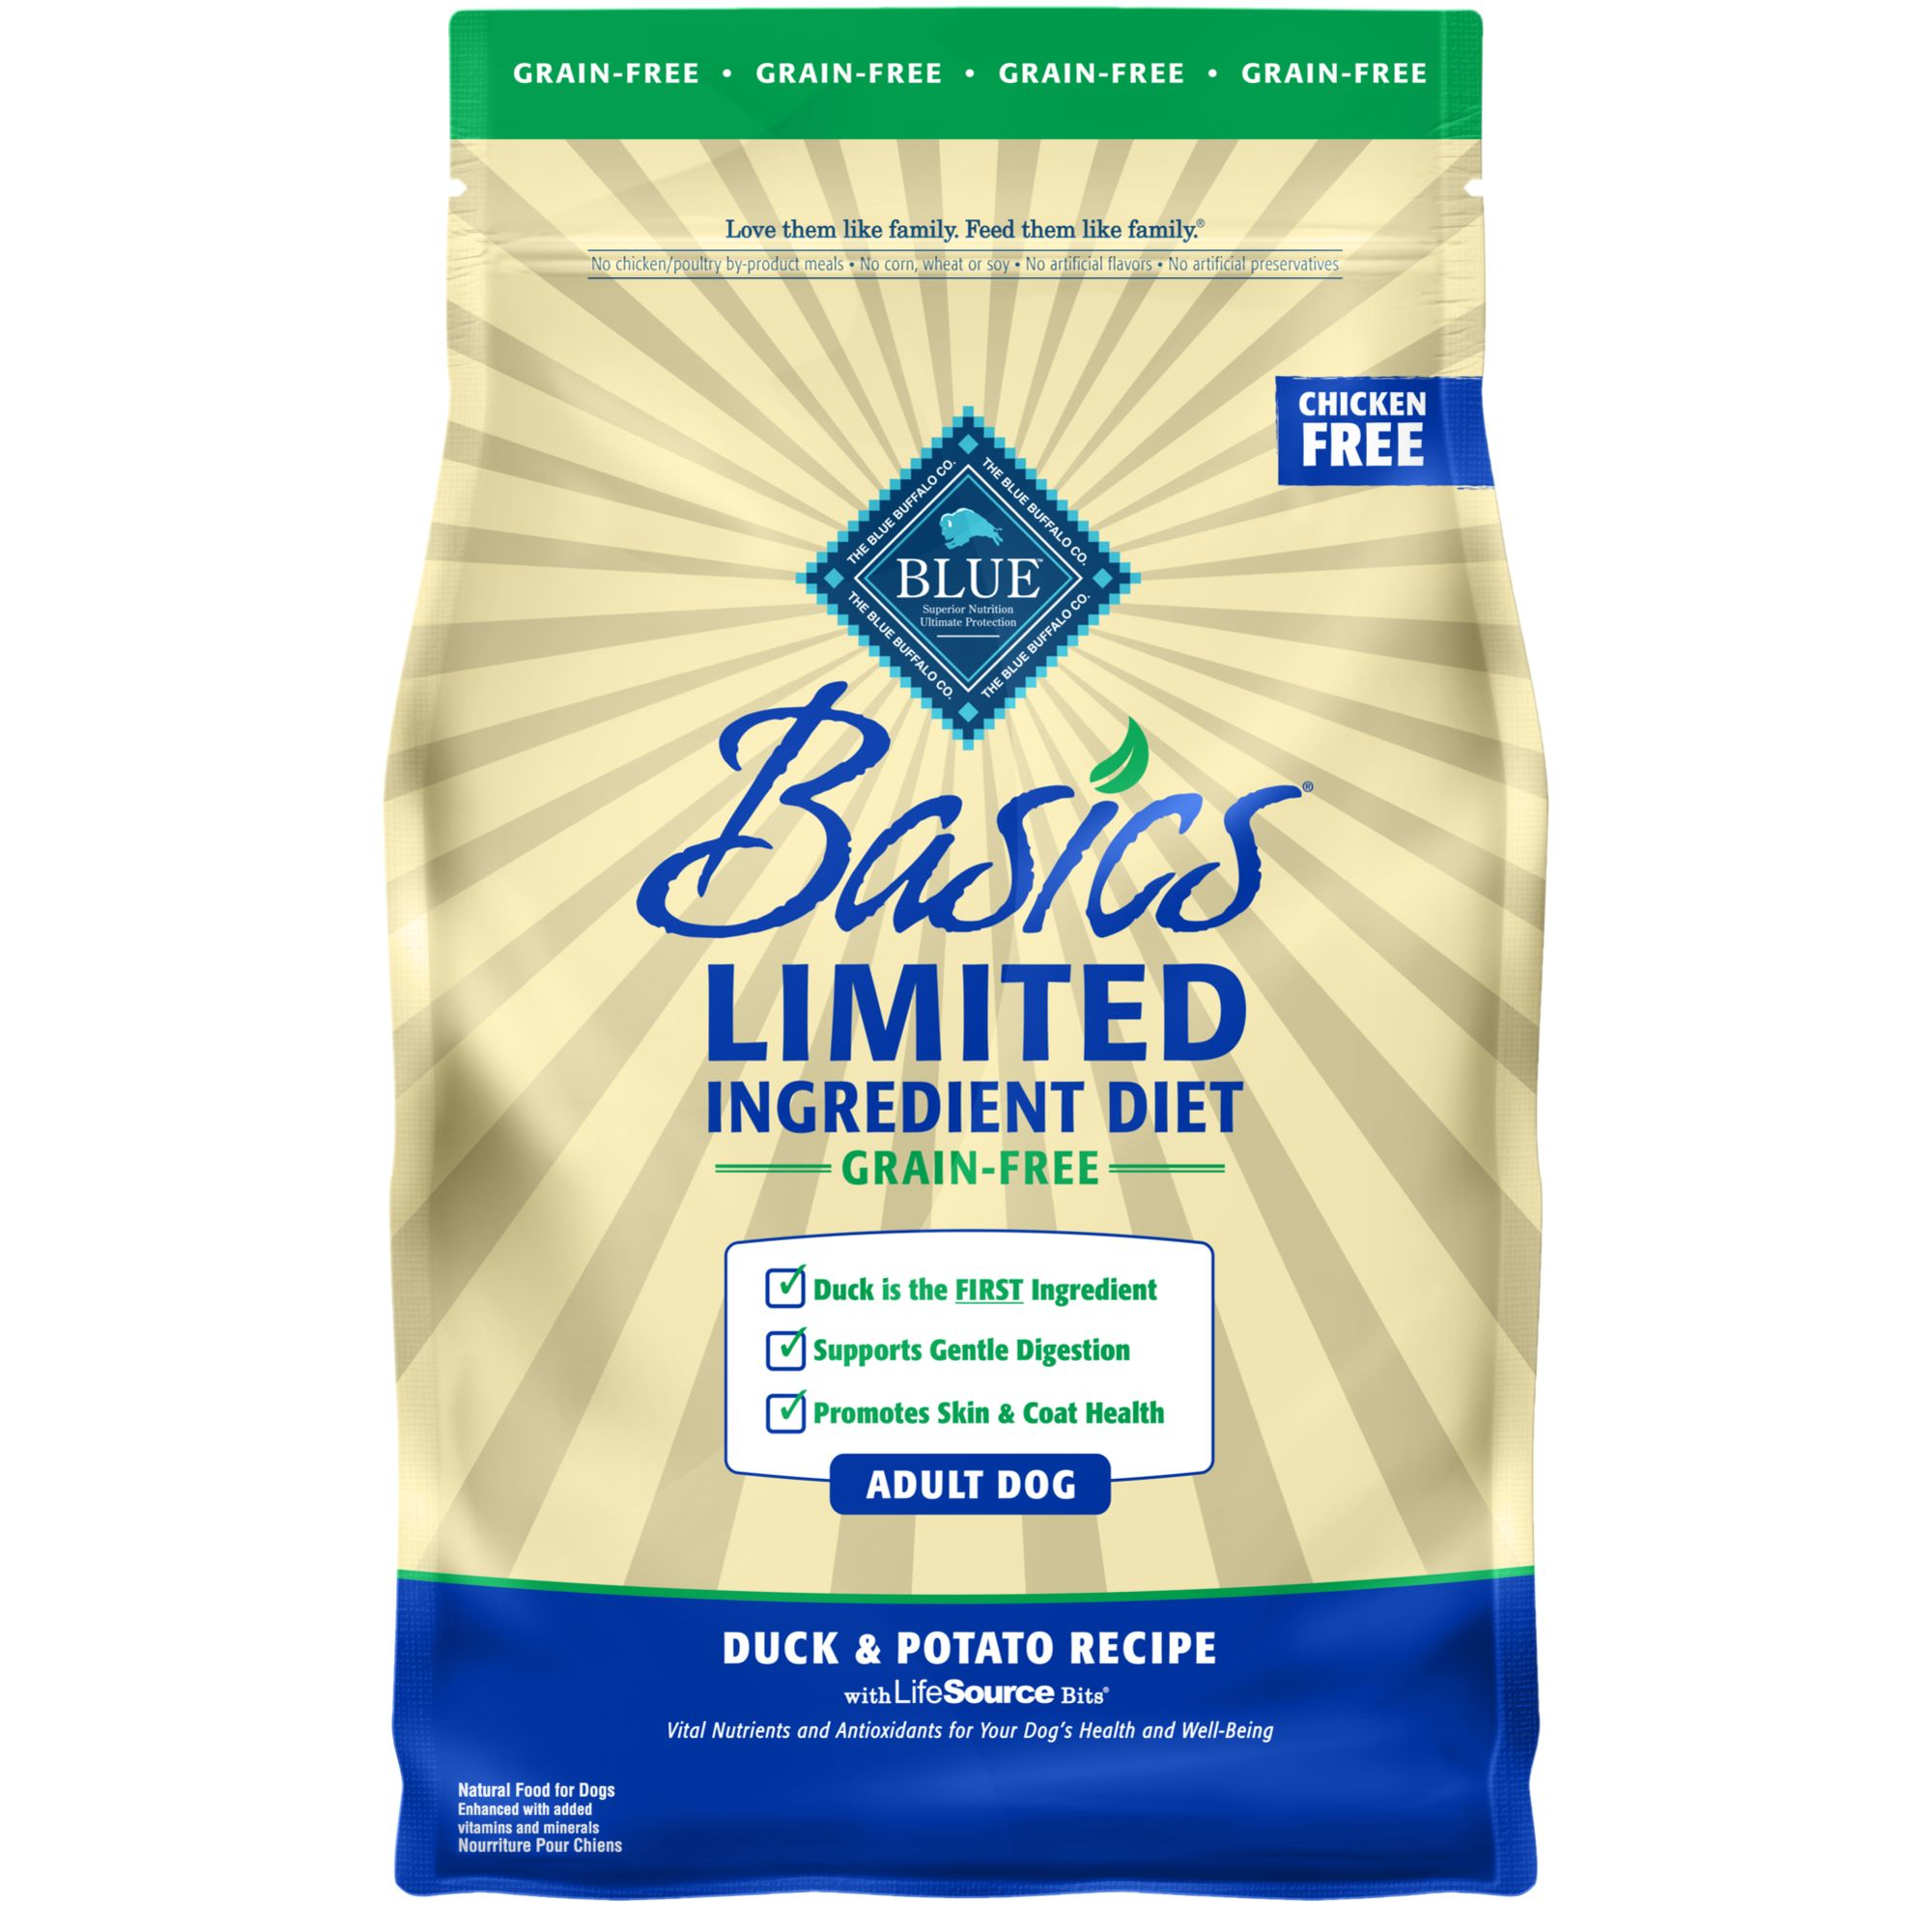 Blue Basics Limited Ingredient Grain Free Dog Food